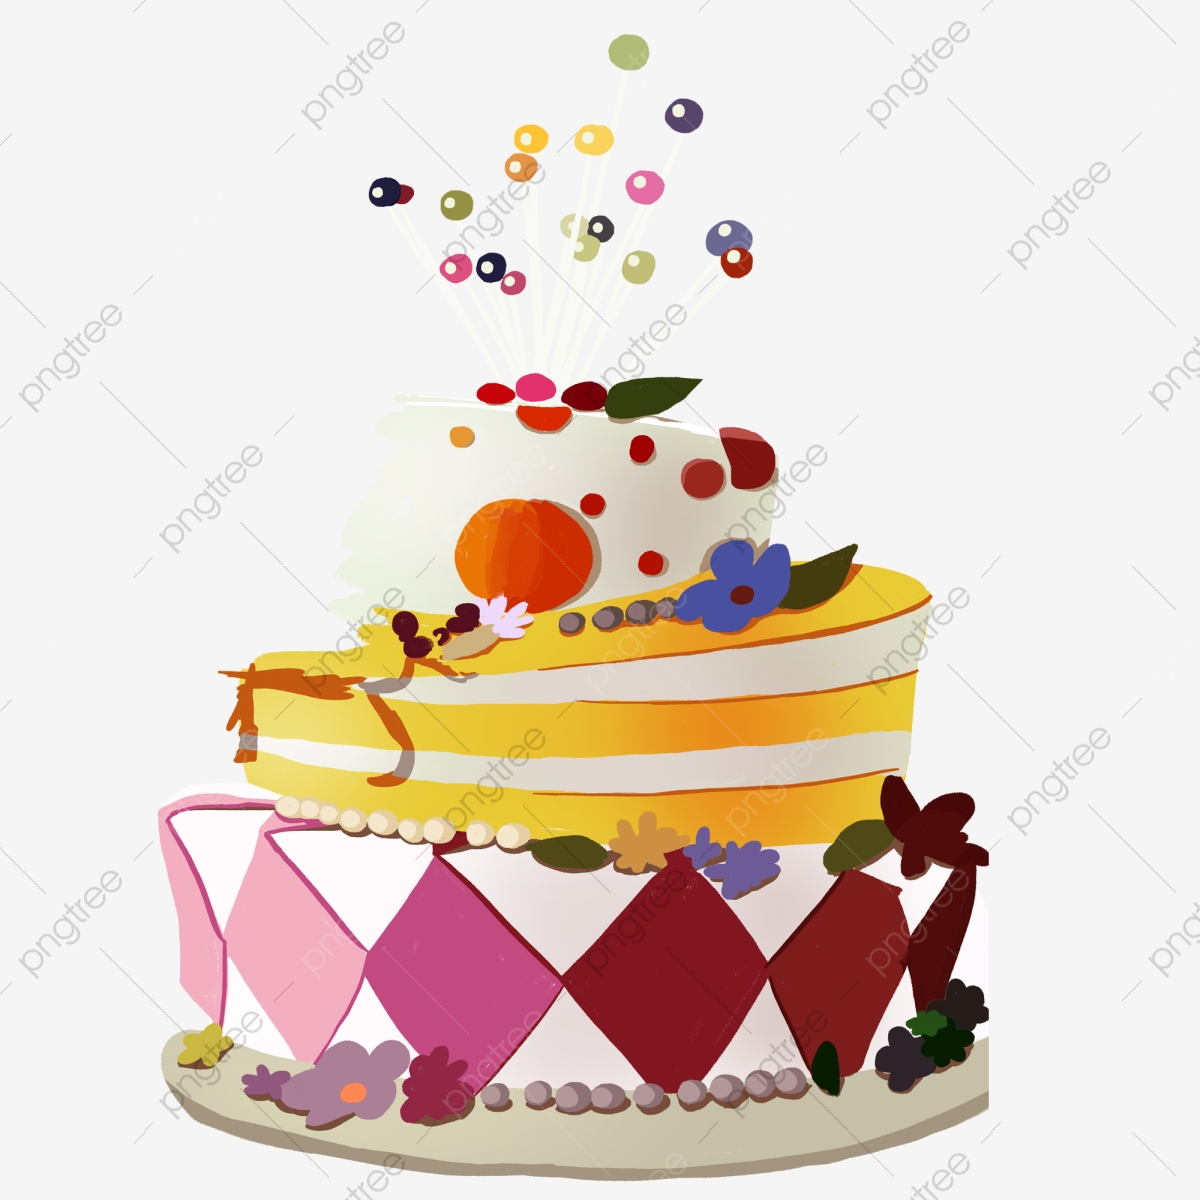 Christmas Cake Stock Vector Illustration And Royalty Free Christmas Cake  Clipart